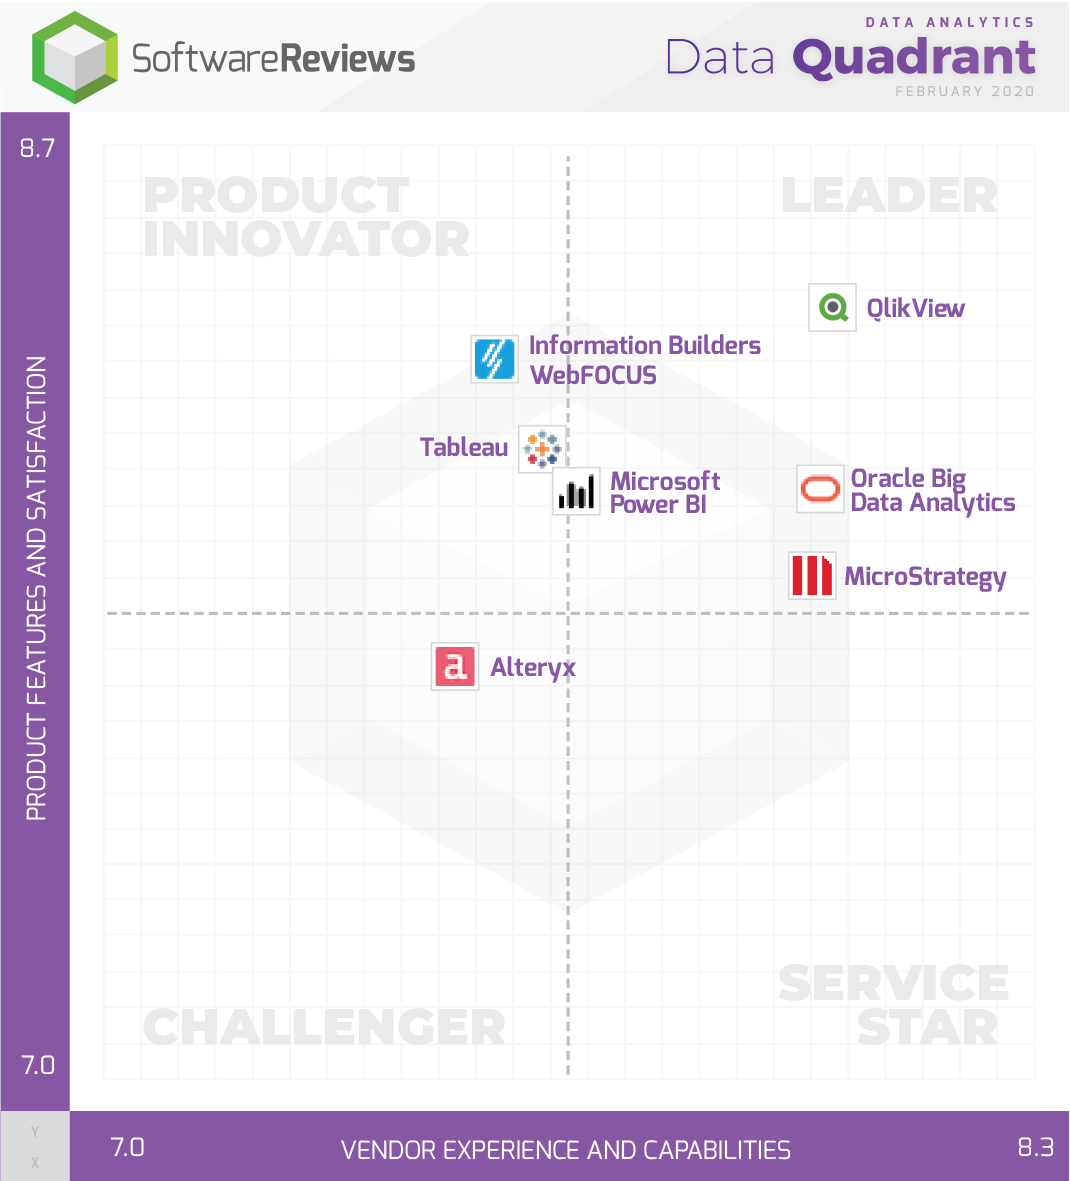 Data Analytics Data Quadrant